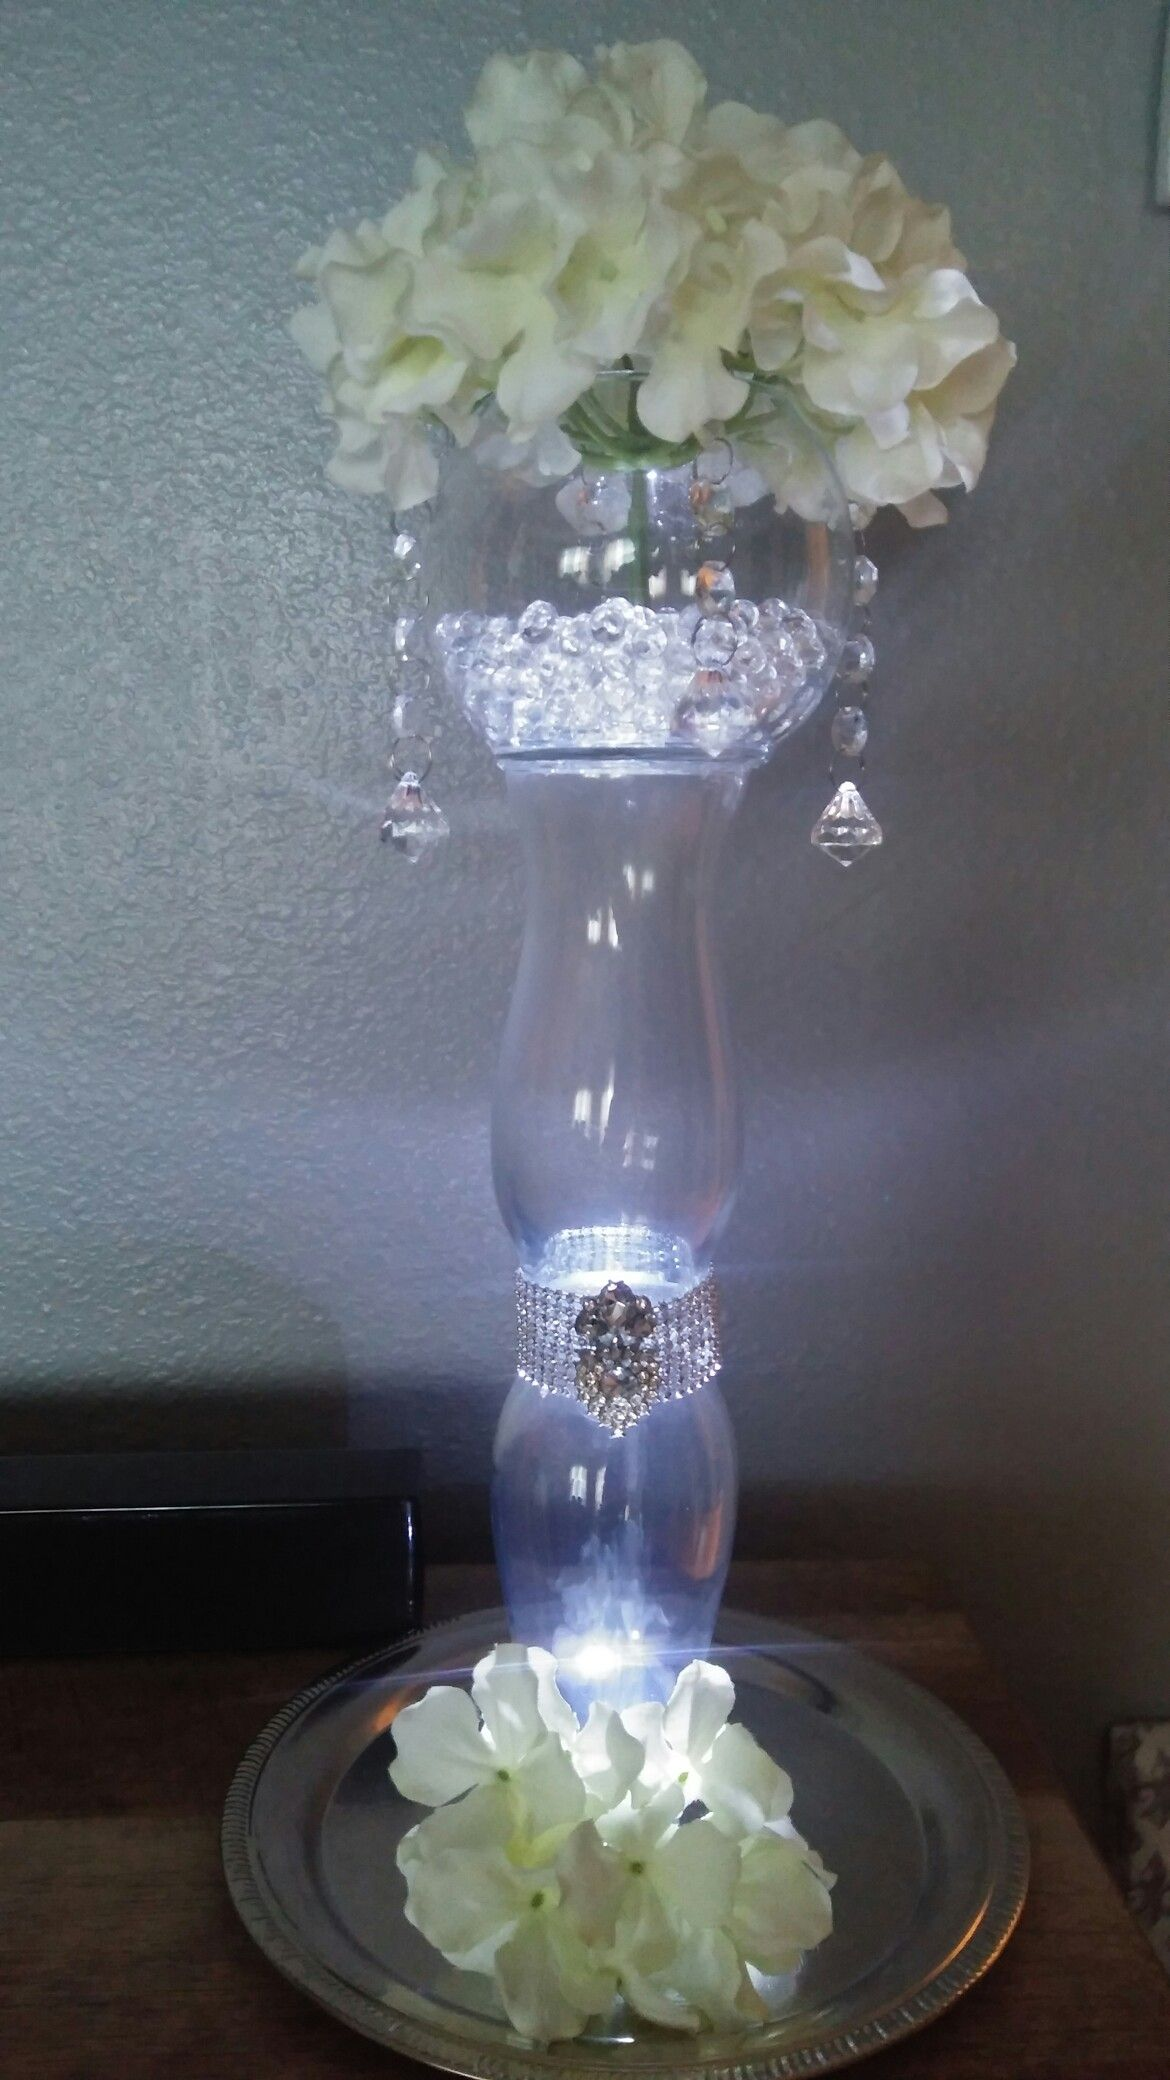 Diy Crystal Centerpiece With 3 Dollar Tree Vases Dollar Tree Vases Crystal Centerpieces Dollar Tree Centerpieces